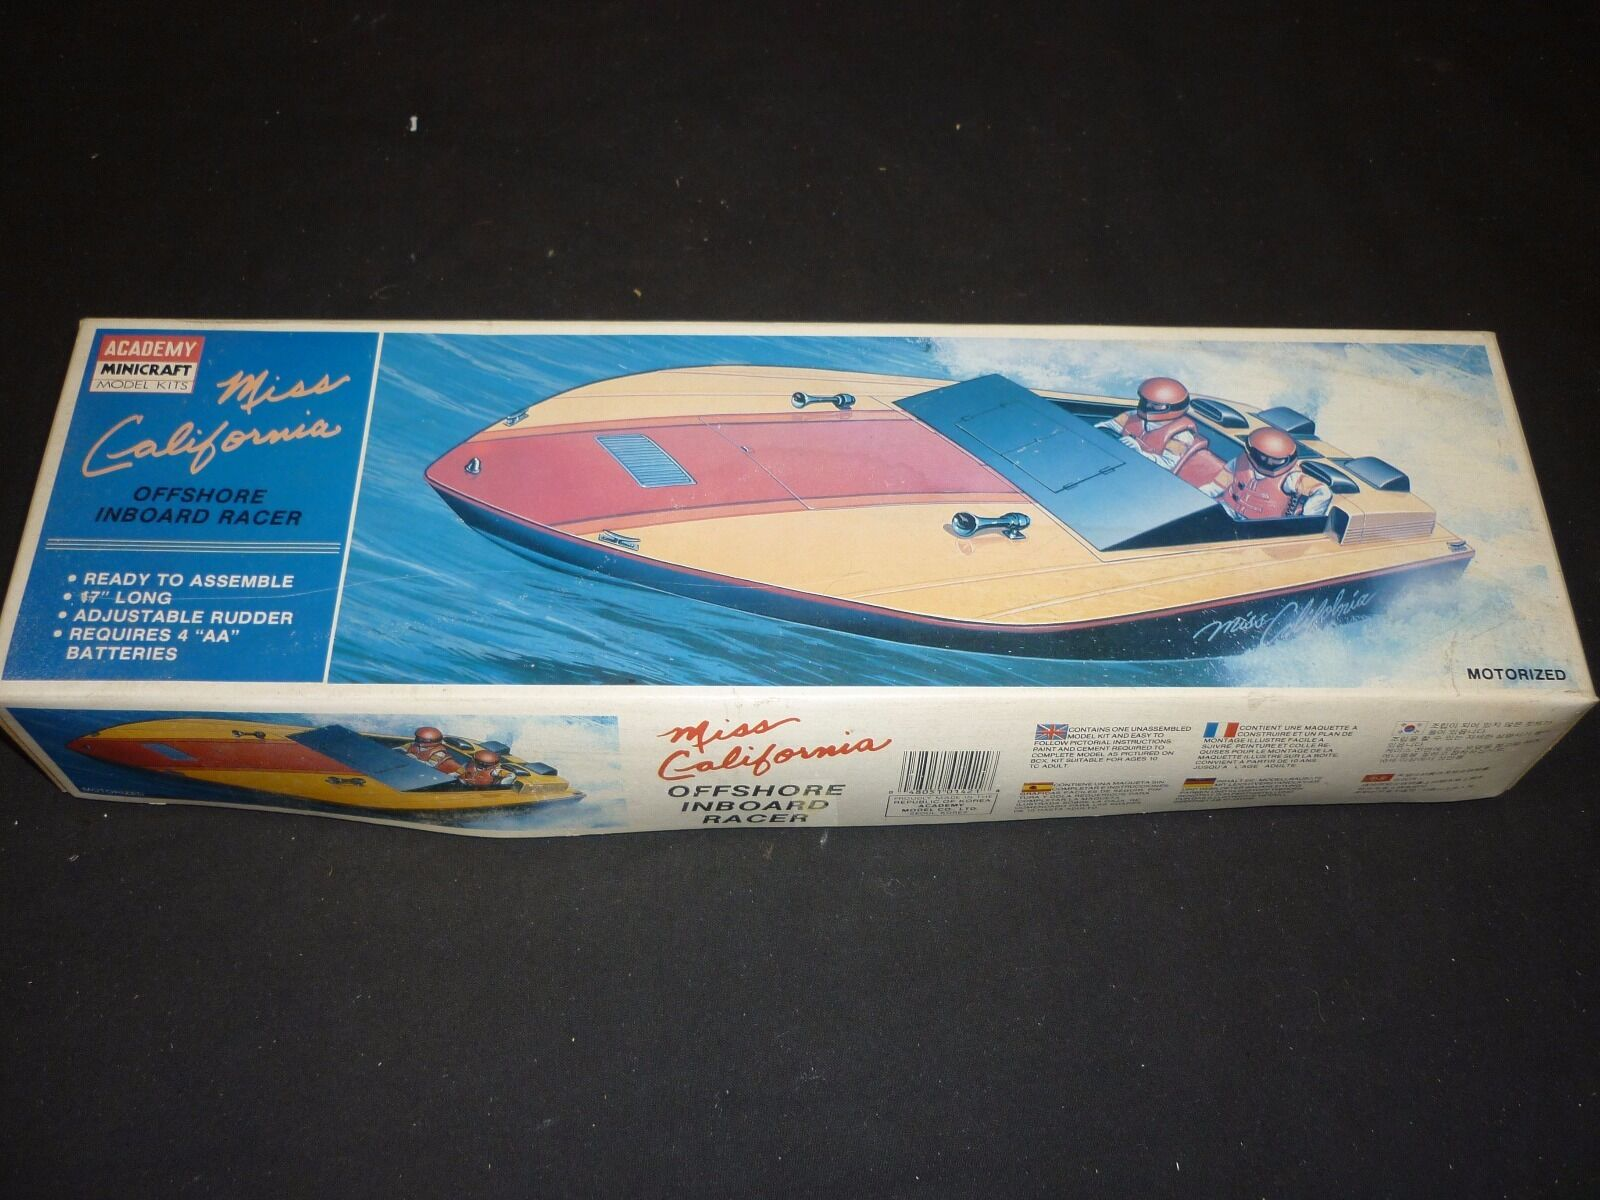 Academy un made plastic kit of a Miss California off shore inboard racer,  boxed